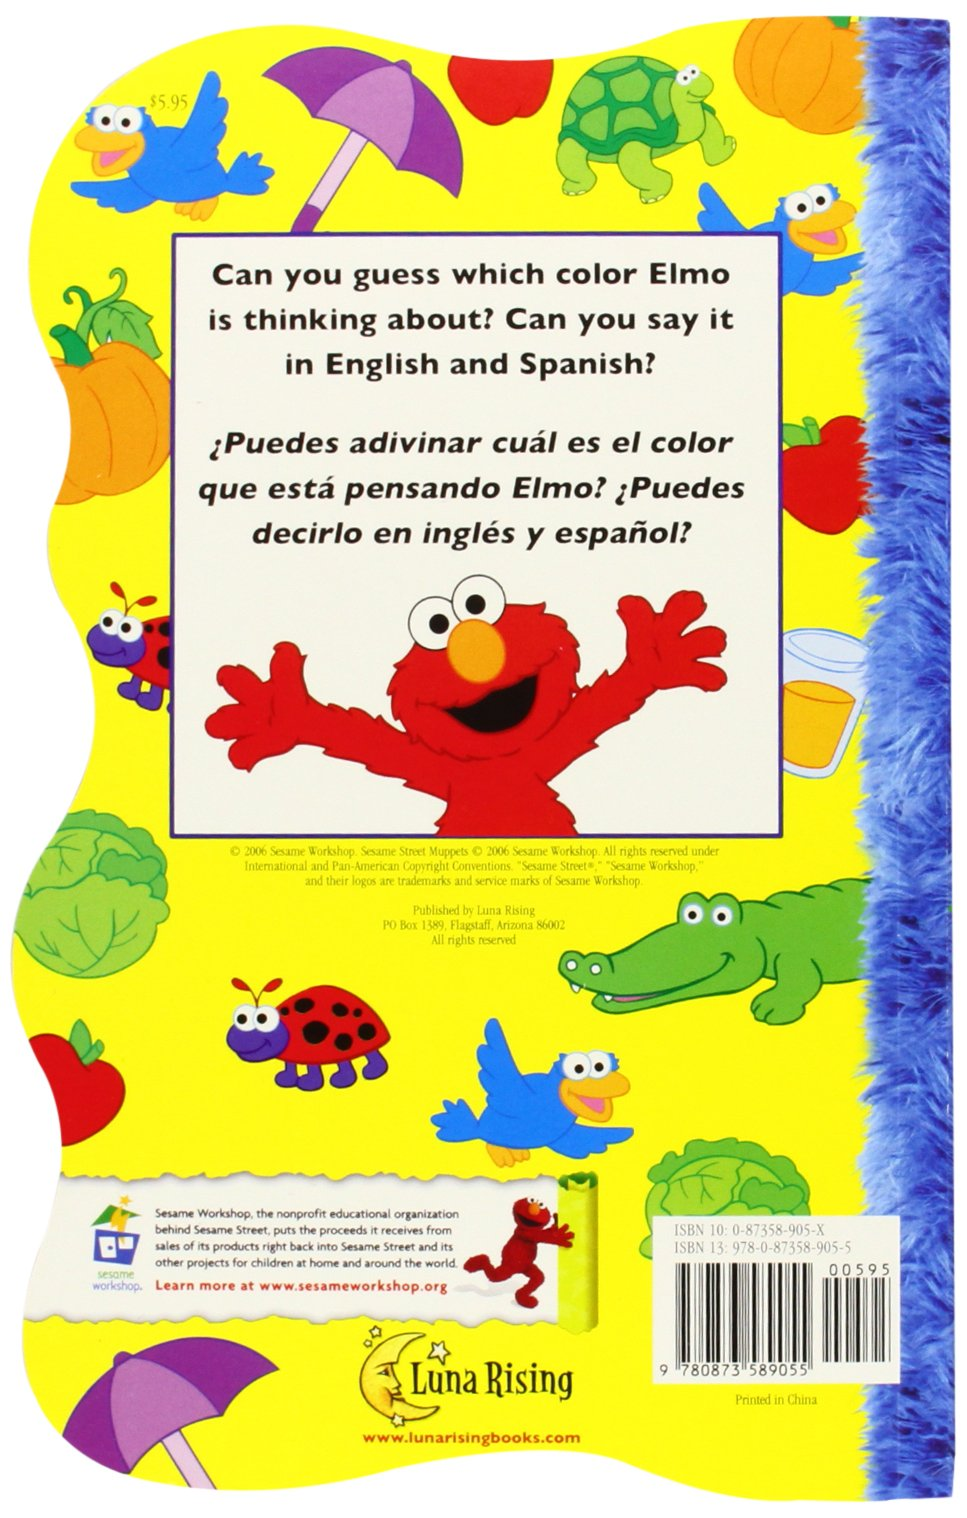 Game board colors - Amazon Com Elmo S Guessing Game About Colors Elmo Y Su Juego De Adivinar Los Colores Sesame Street Elmo S World Board Books English